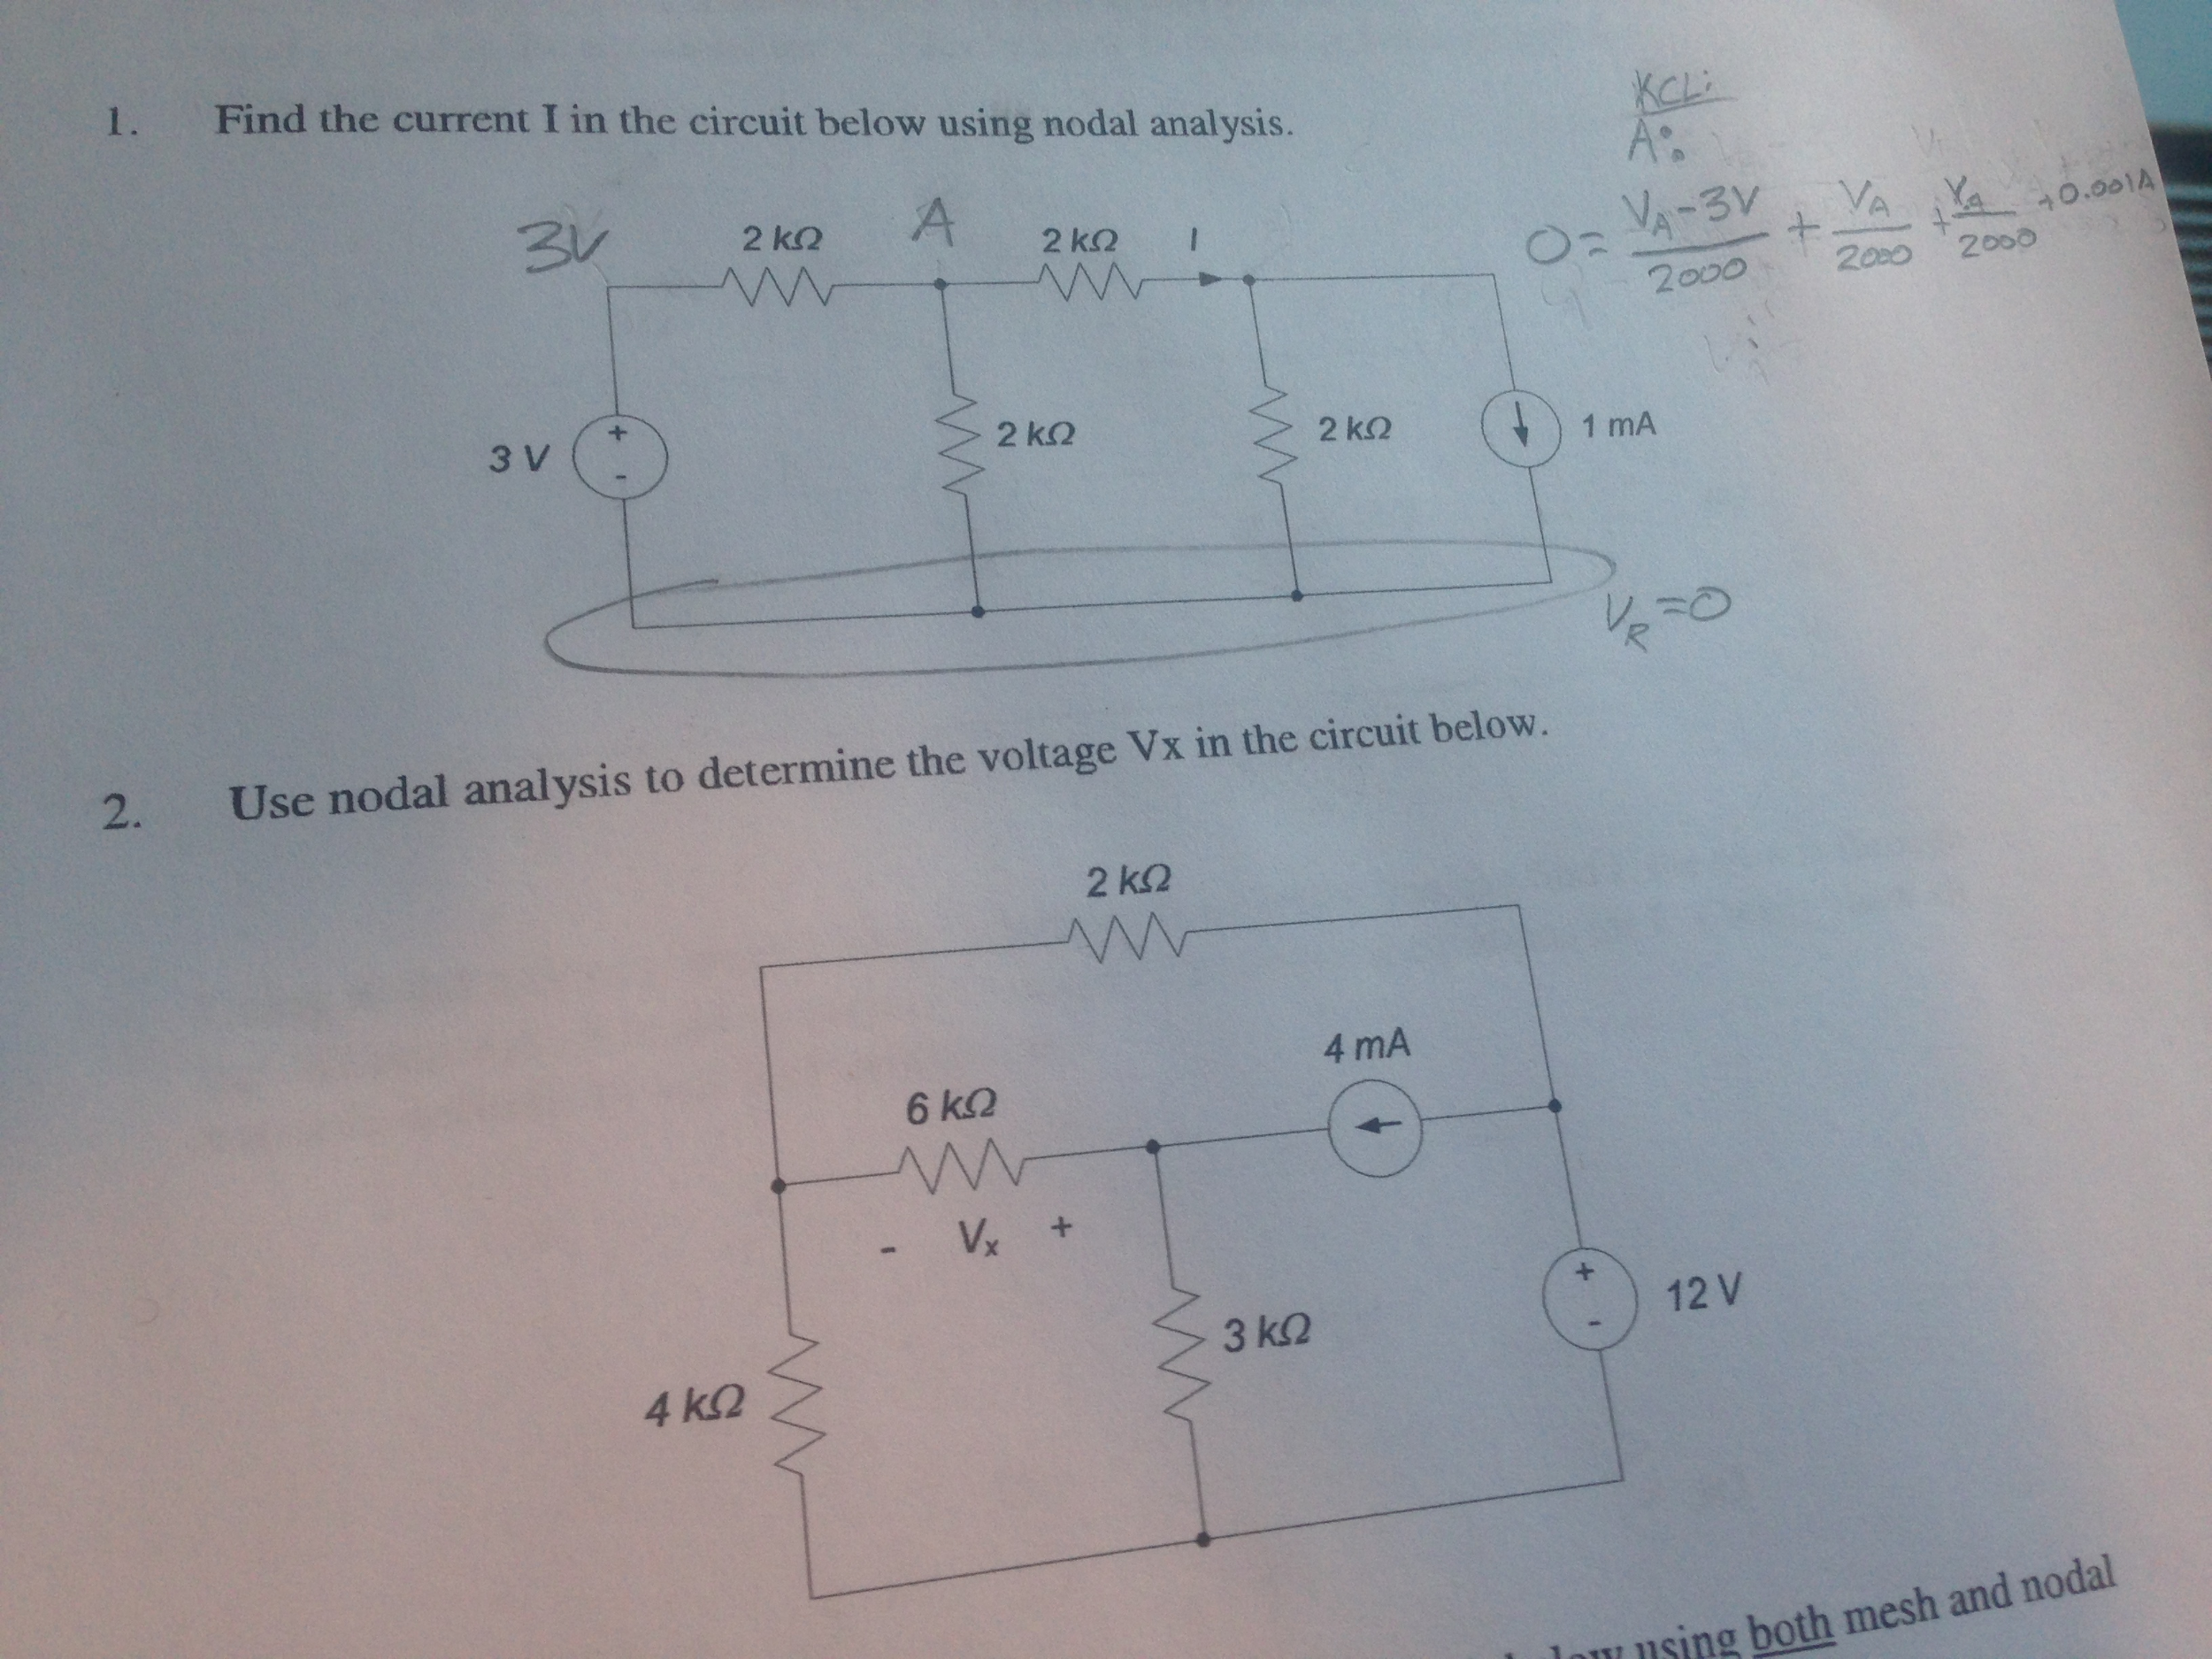 Find the current I in the circuit below using noda